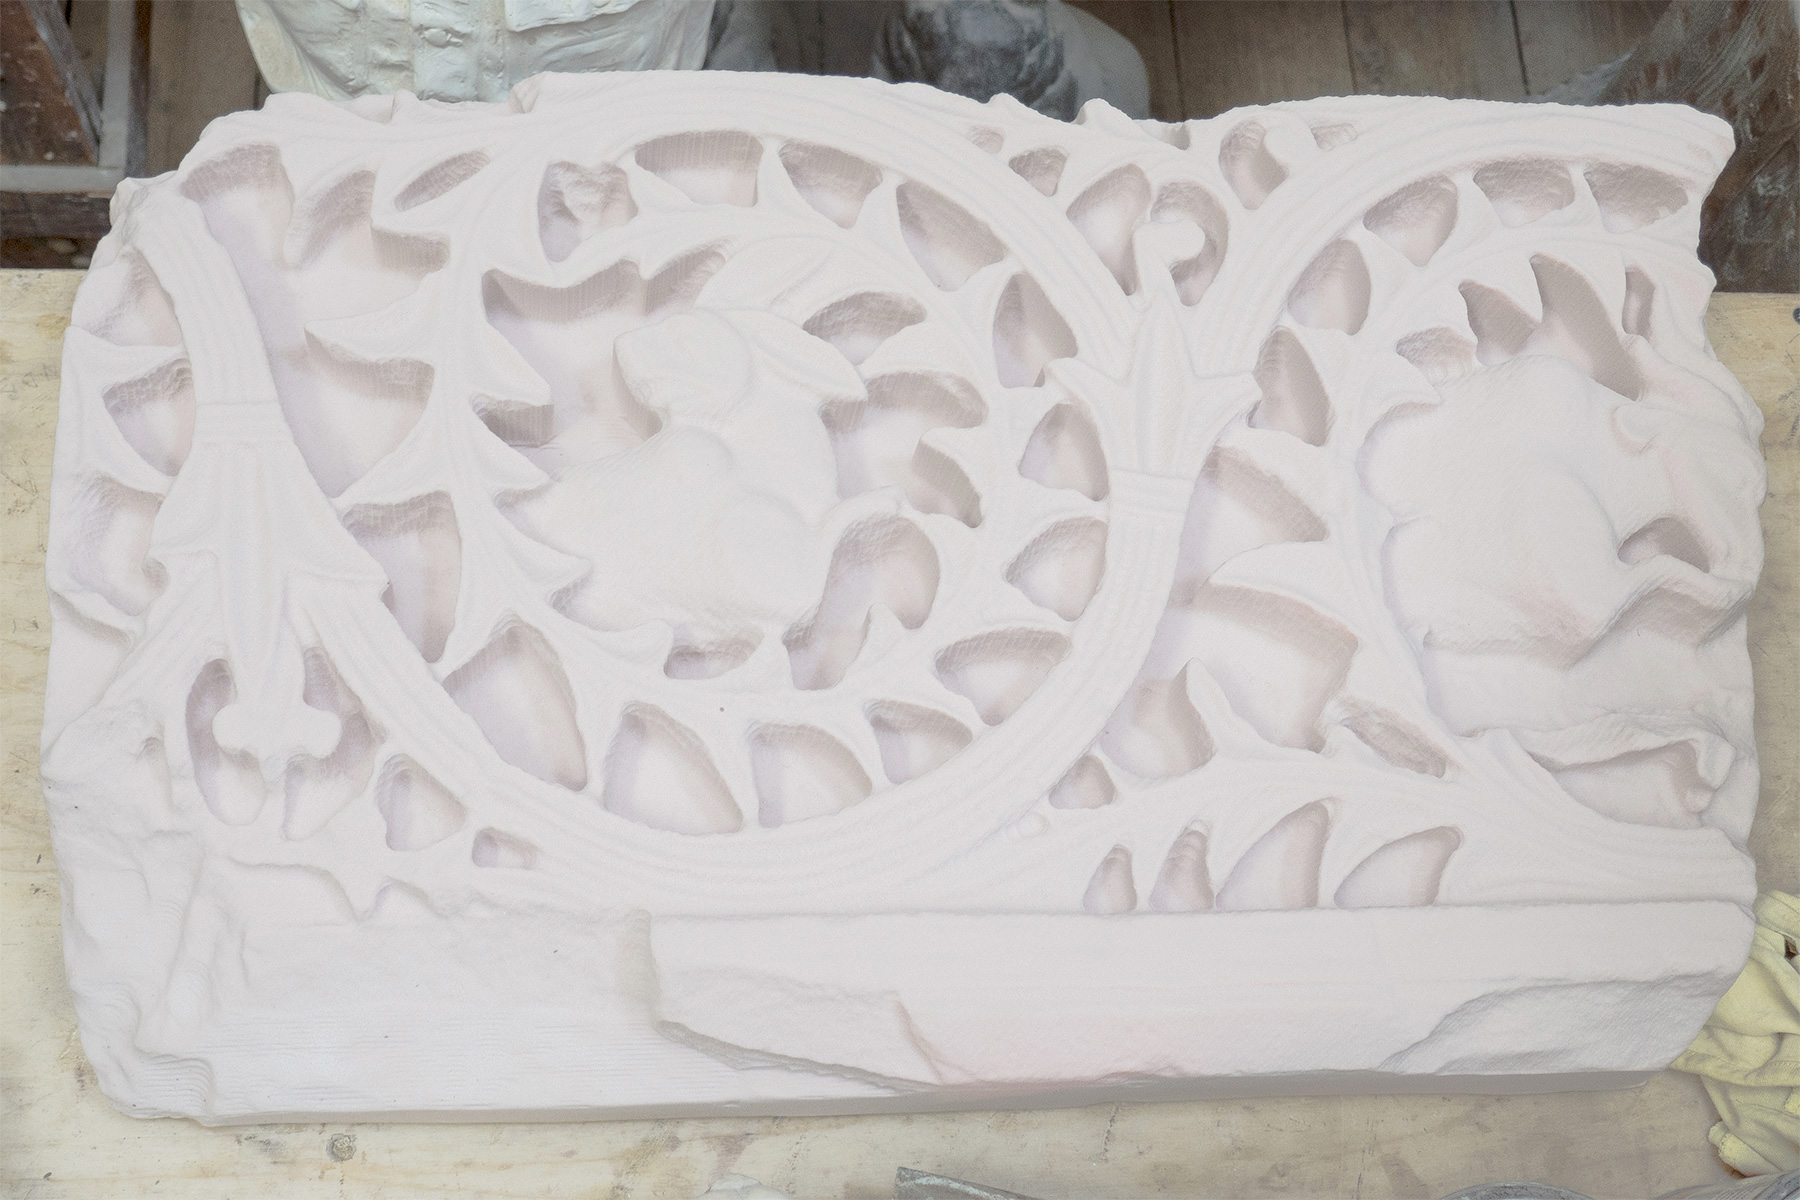 A 3D-printed reproduction before installation and painting.